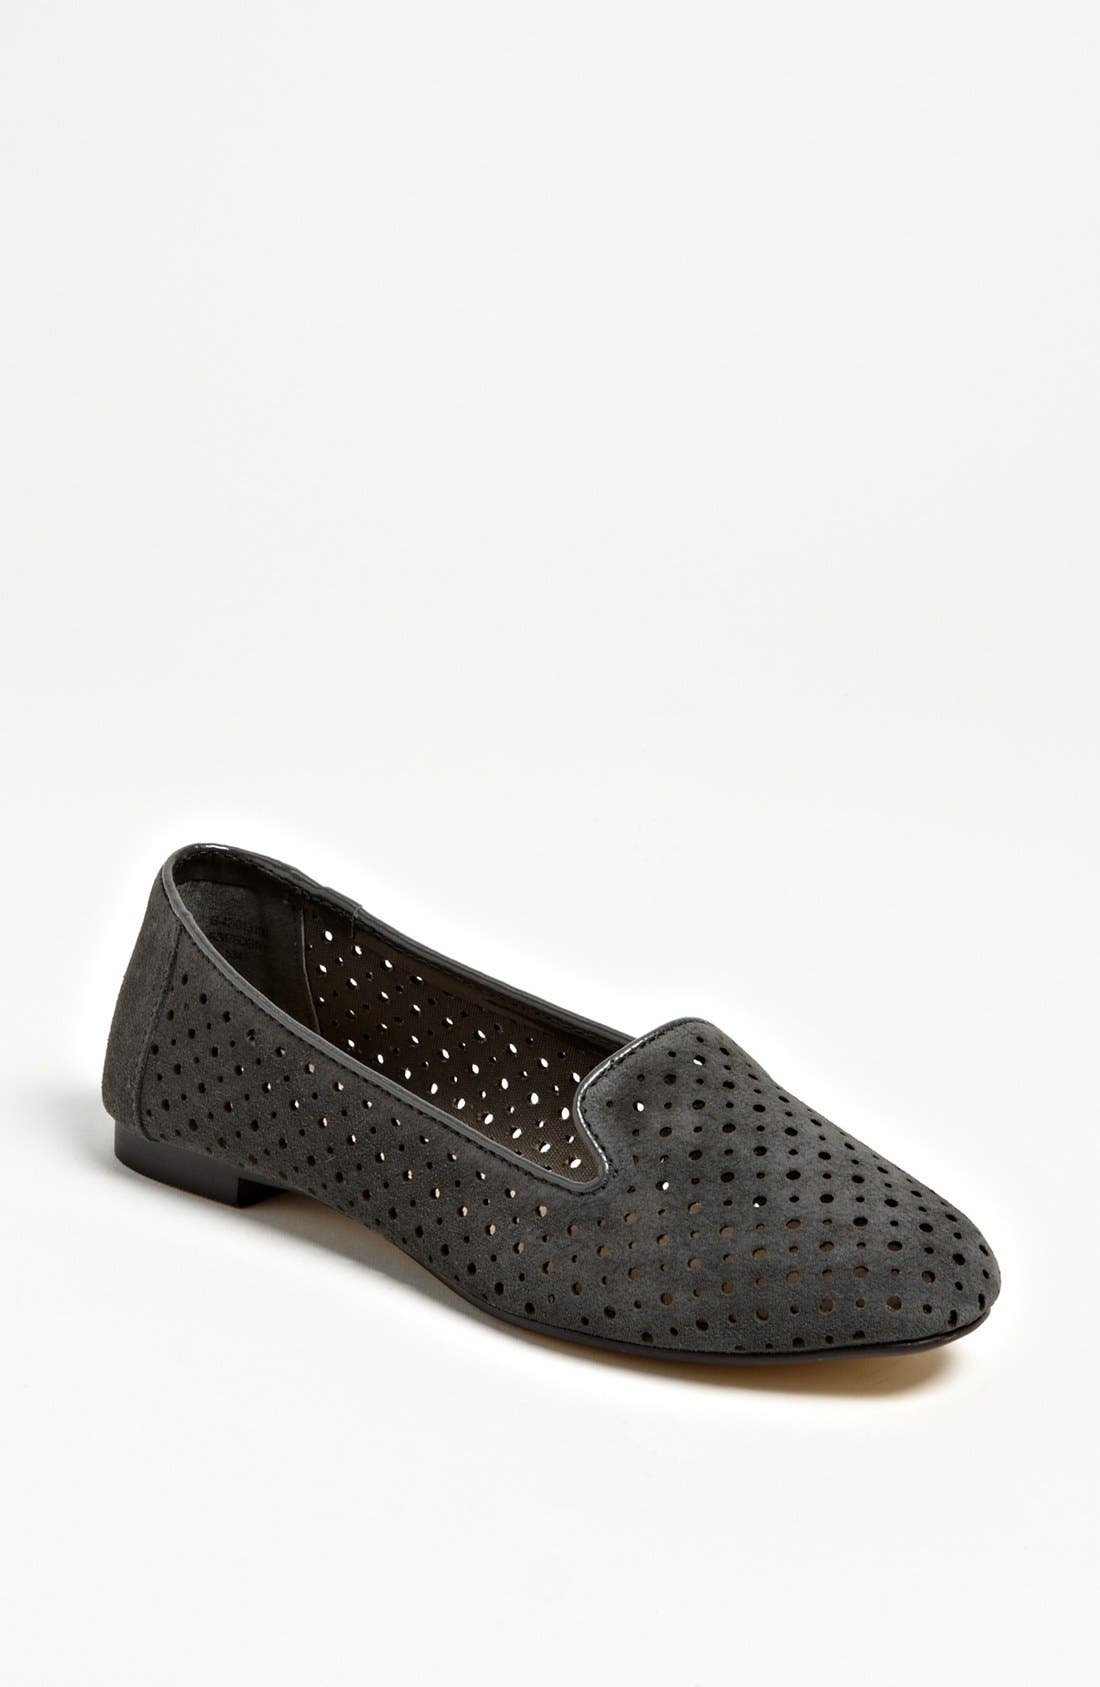 Alternate Image 1 Selected - Topshop 'Moon' Slipper